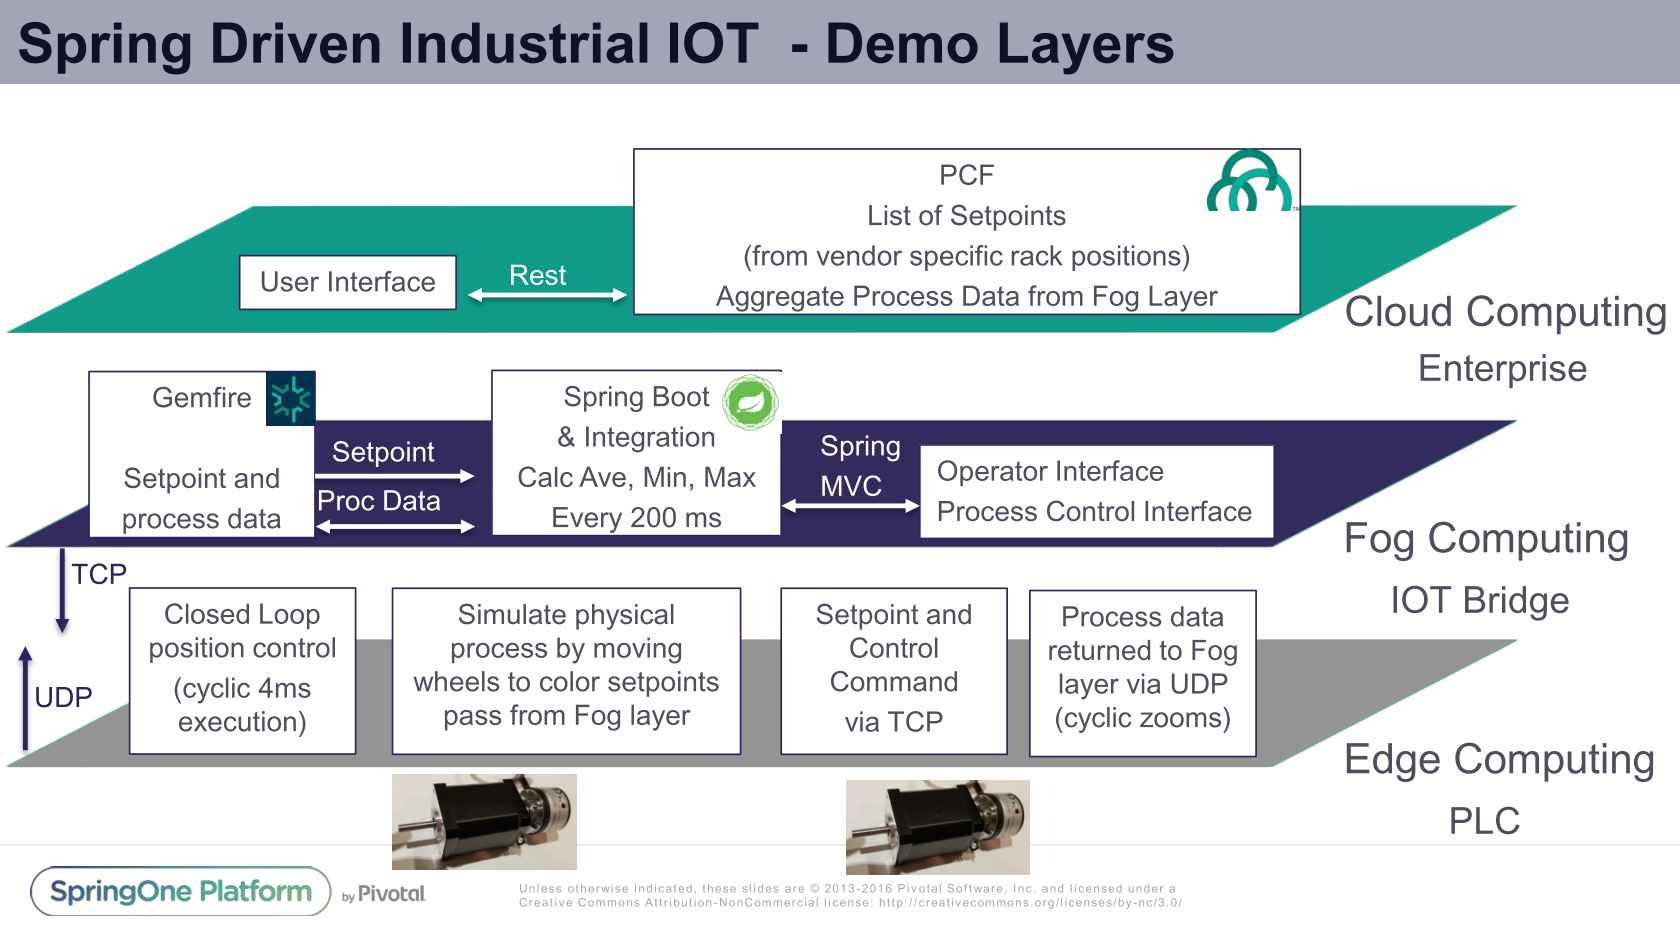 Spring Driven Industrial IoT Utilizing Edge, Fog, and Cloud